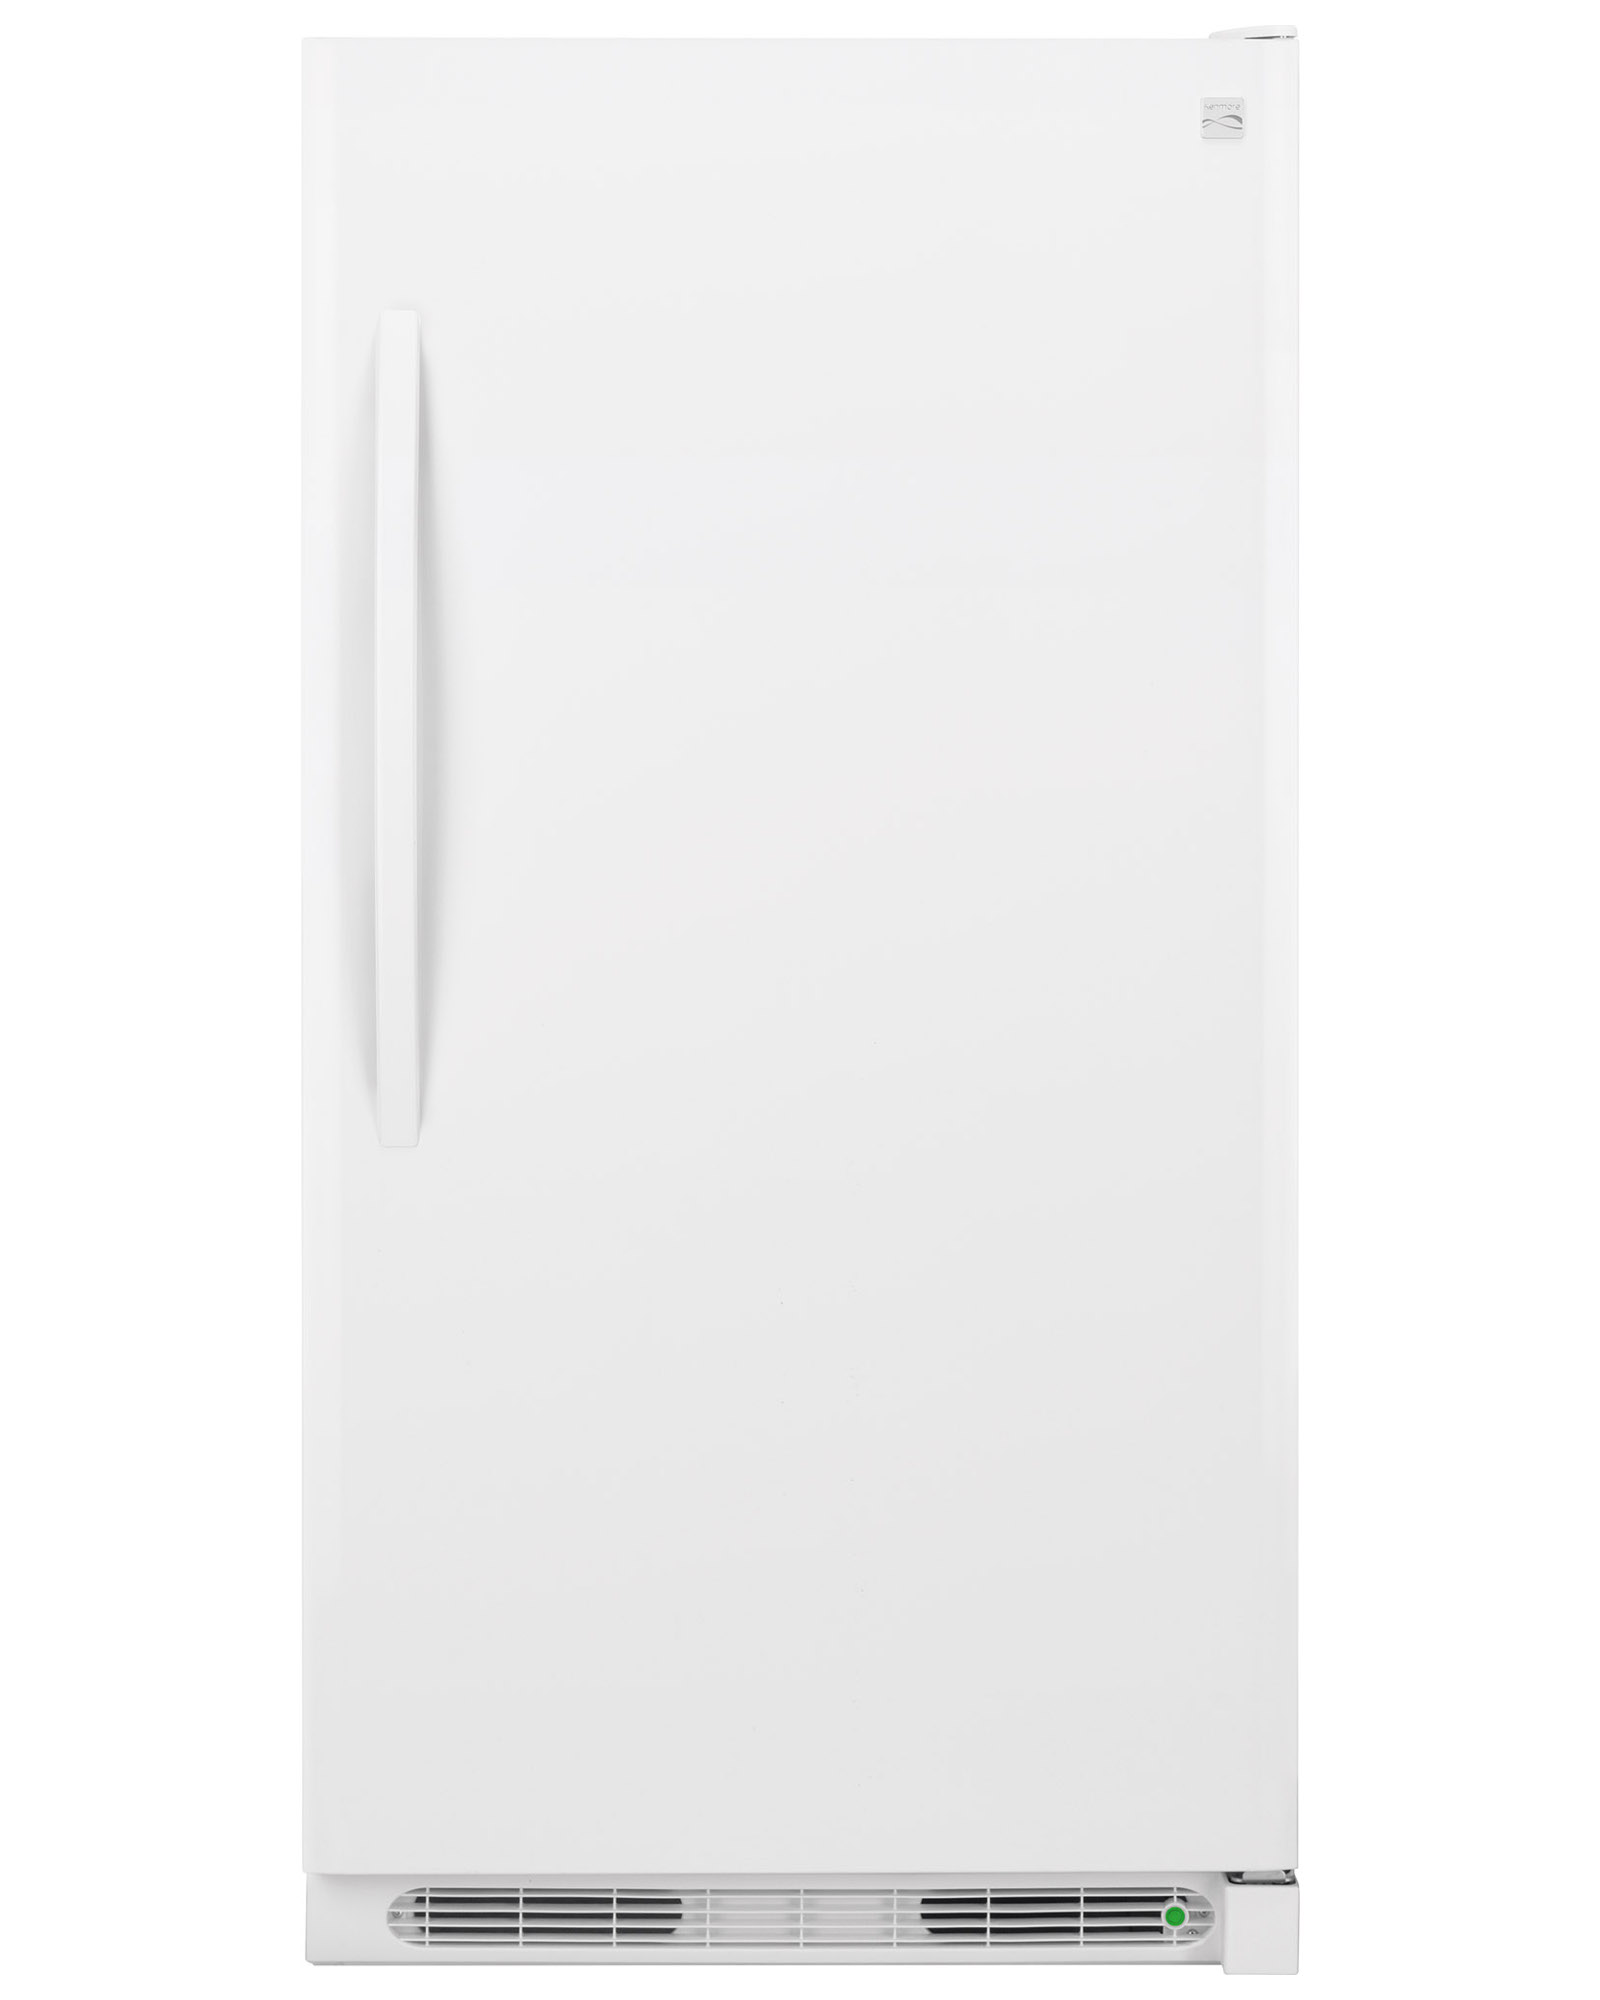 70722-16-7-cu-ft-Freezerless-Refrigerator-White